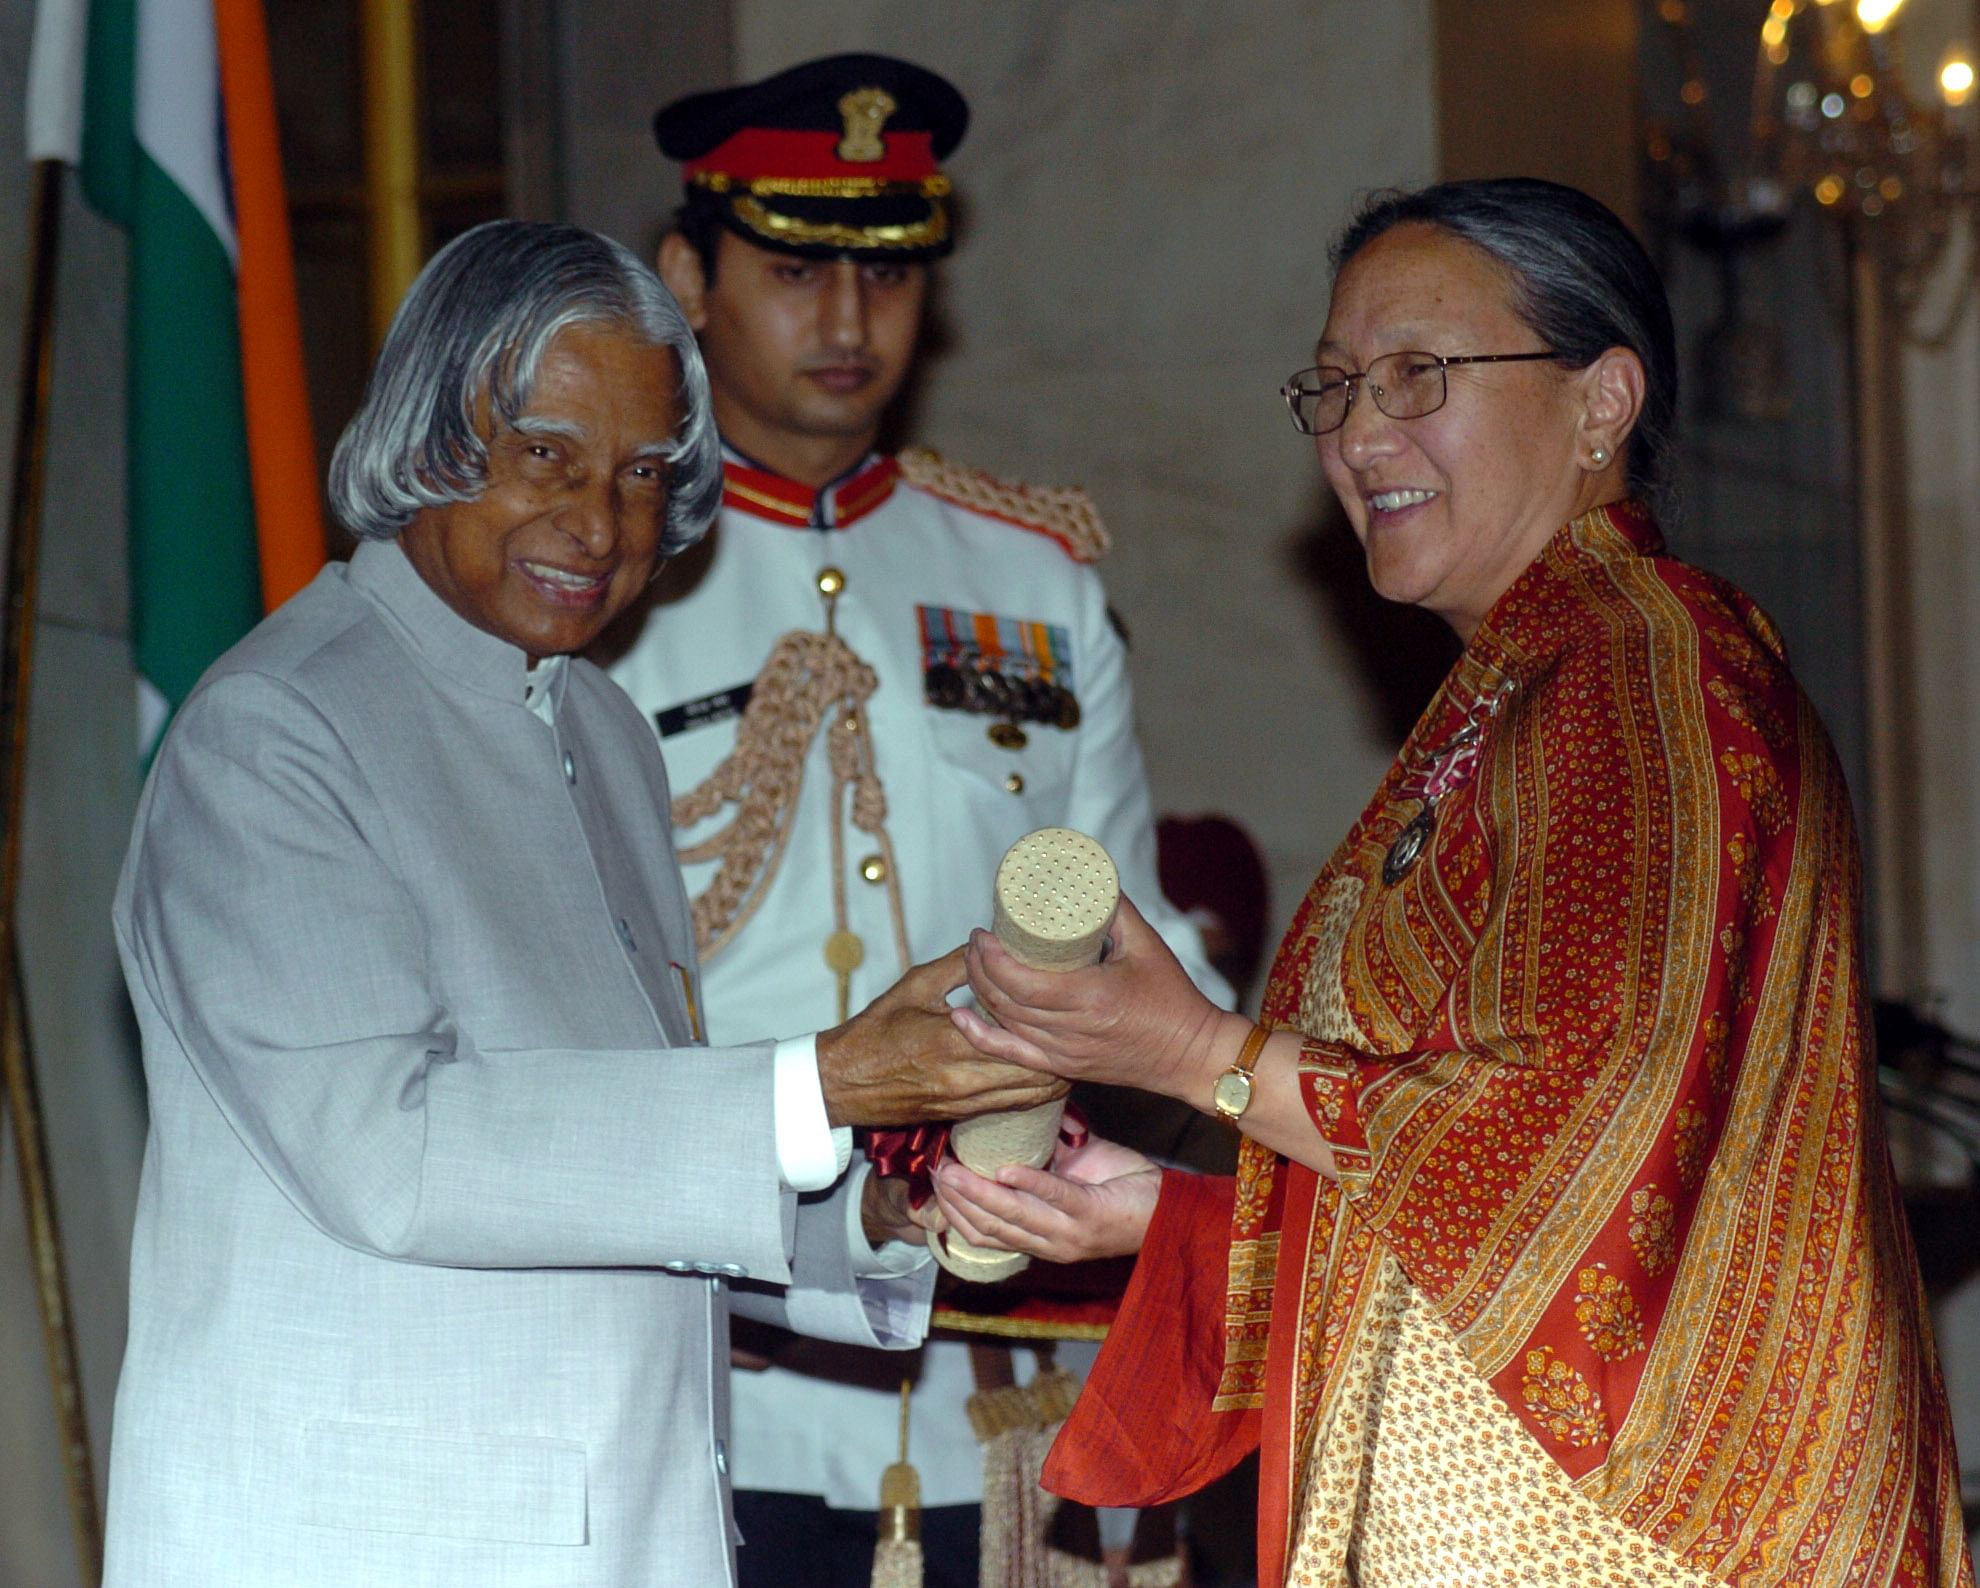 Former President, Dr. A.P.J. Abdul Kalam presenting Padma Shri to Dr. Tsering Landol, a Gynaecologist & Obstetrician of Leh Ladakh, at an Investiture Ceremony at Rashtrapati Bhavan in New Delhi on March 29, 2006. (Source: Wikimedia Commons)